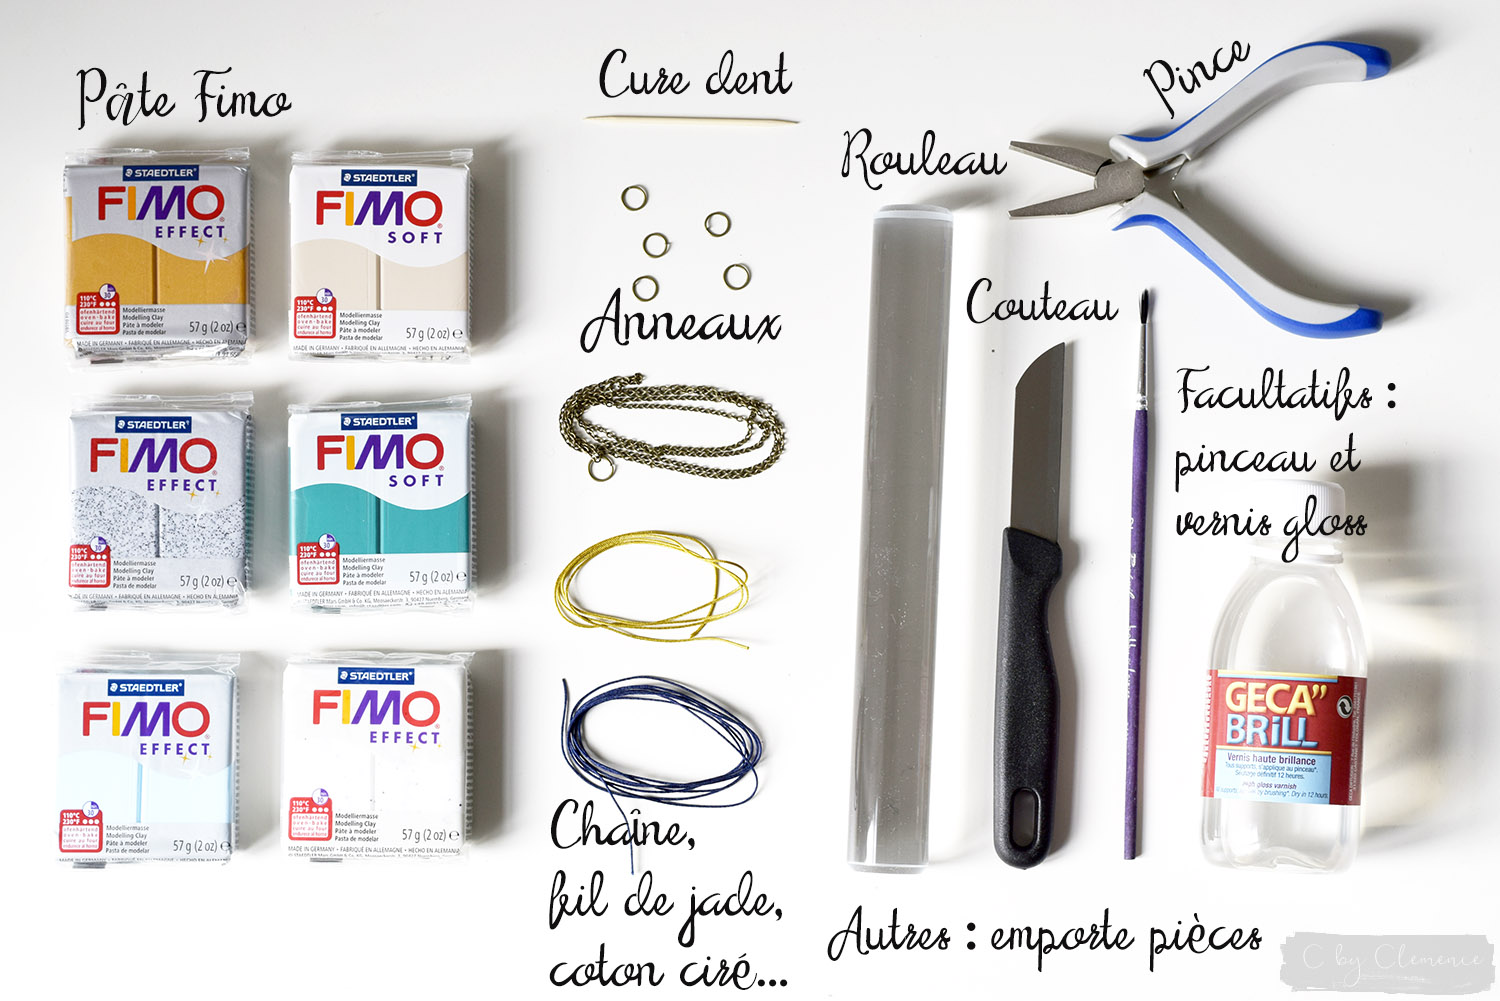 DIY COLLIERS FIMO MARBRES www.cbyclemence.com 01